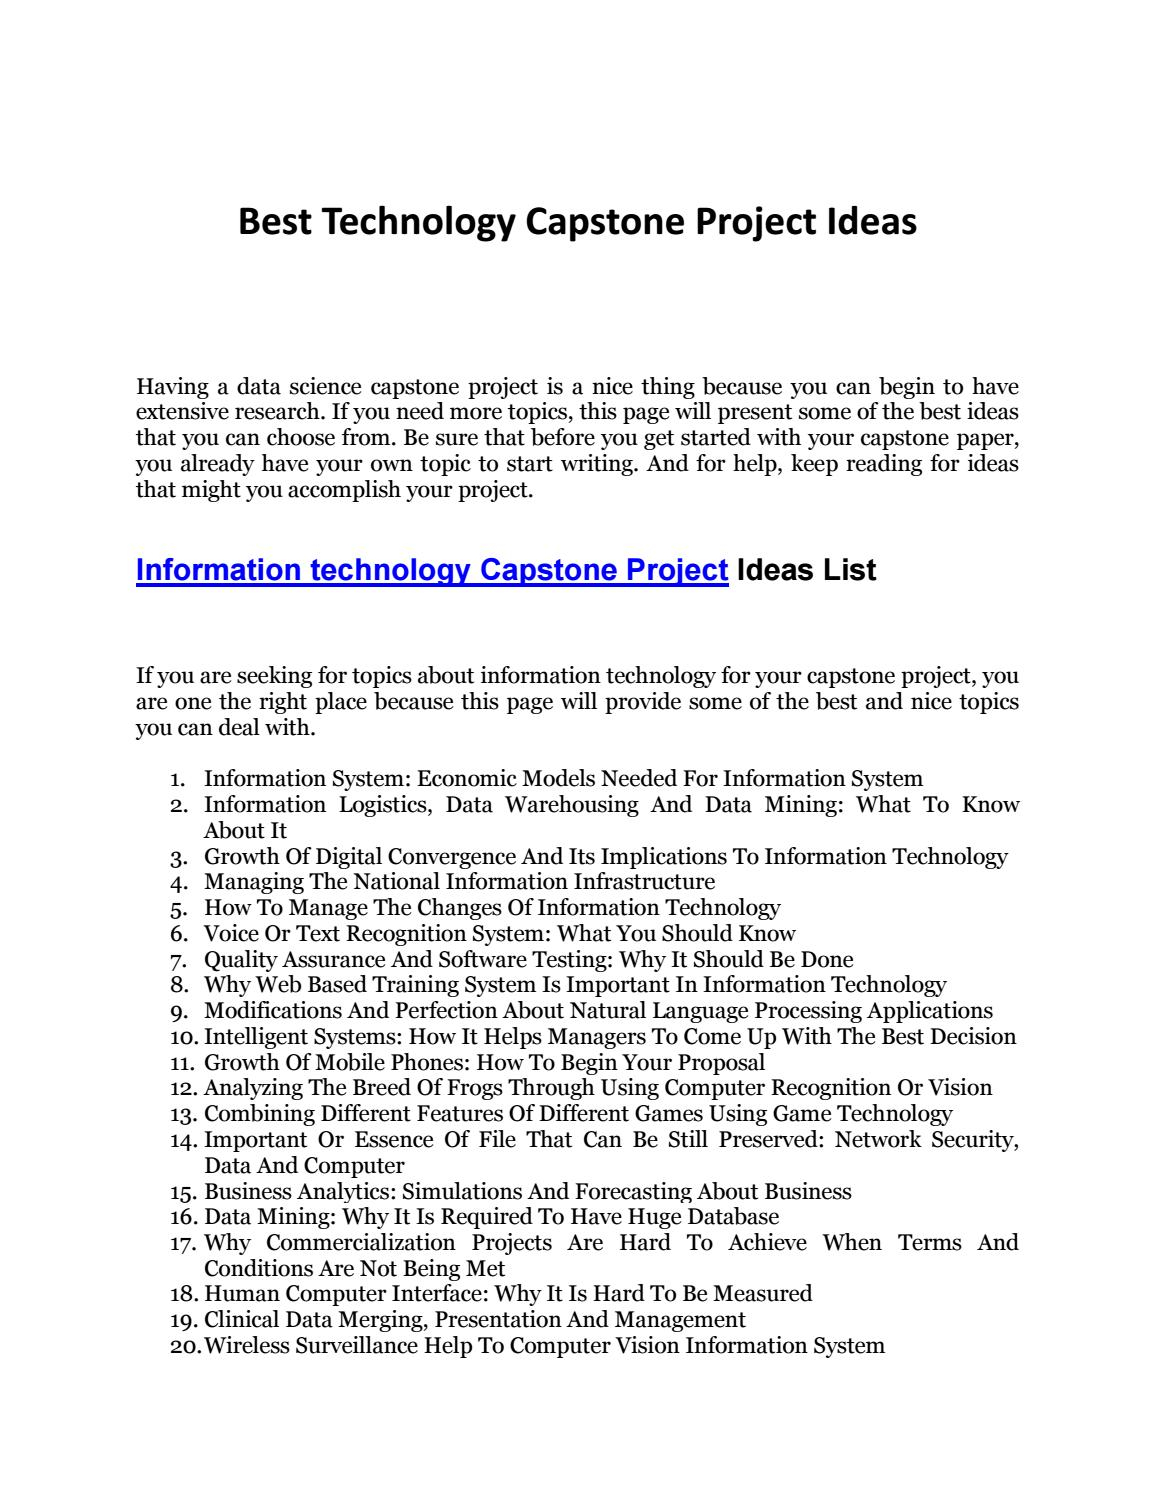 003 Best Topic For Research Paper In Technology Page 1 Shocking Information Full